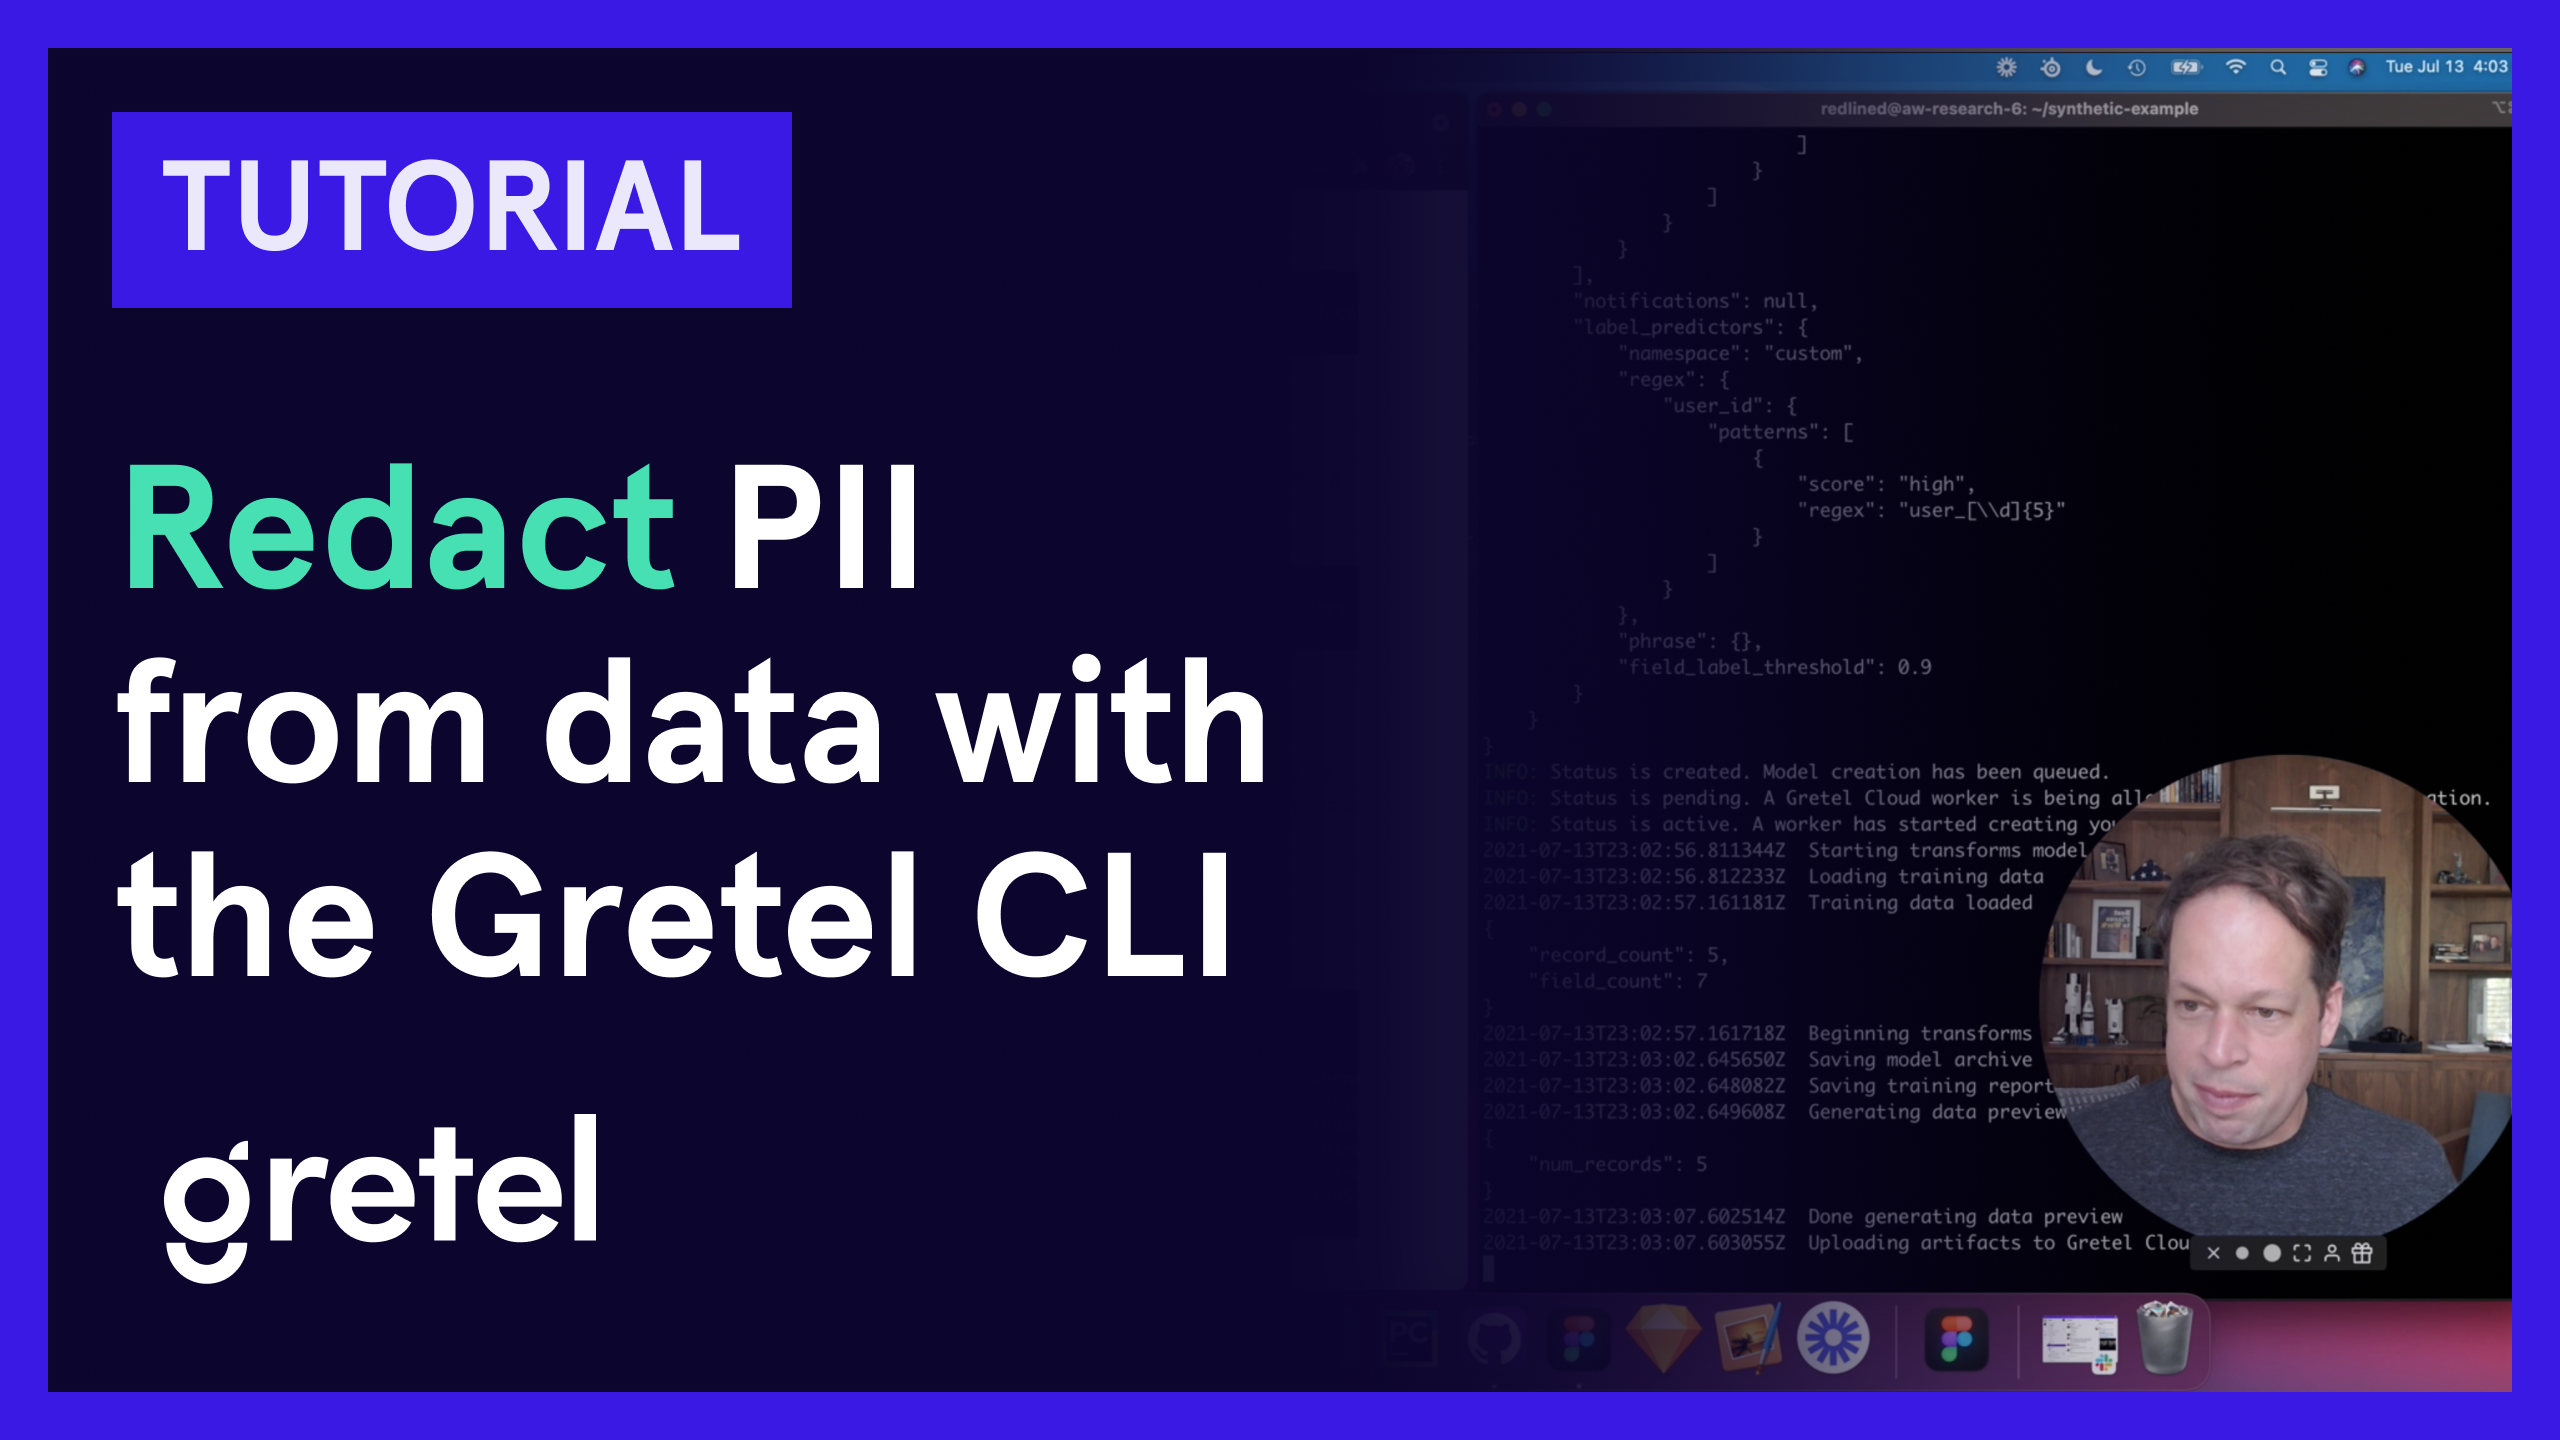 Redact PII from data with the Gretel CLI